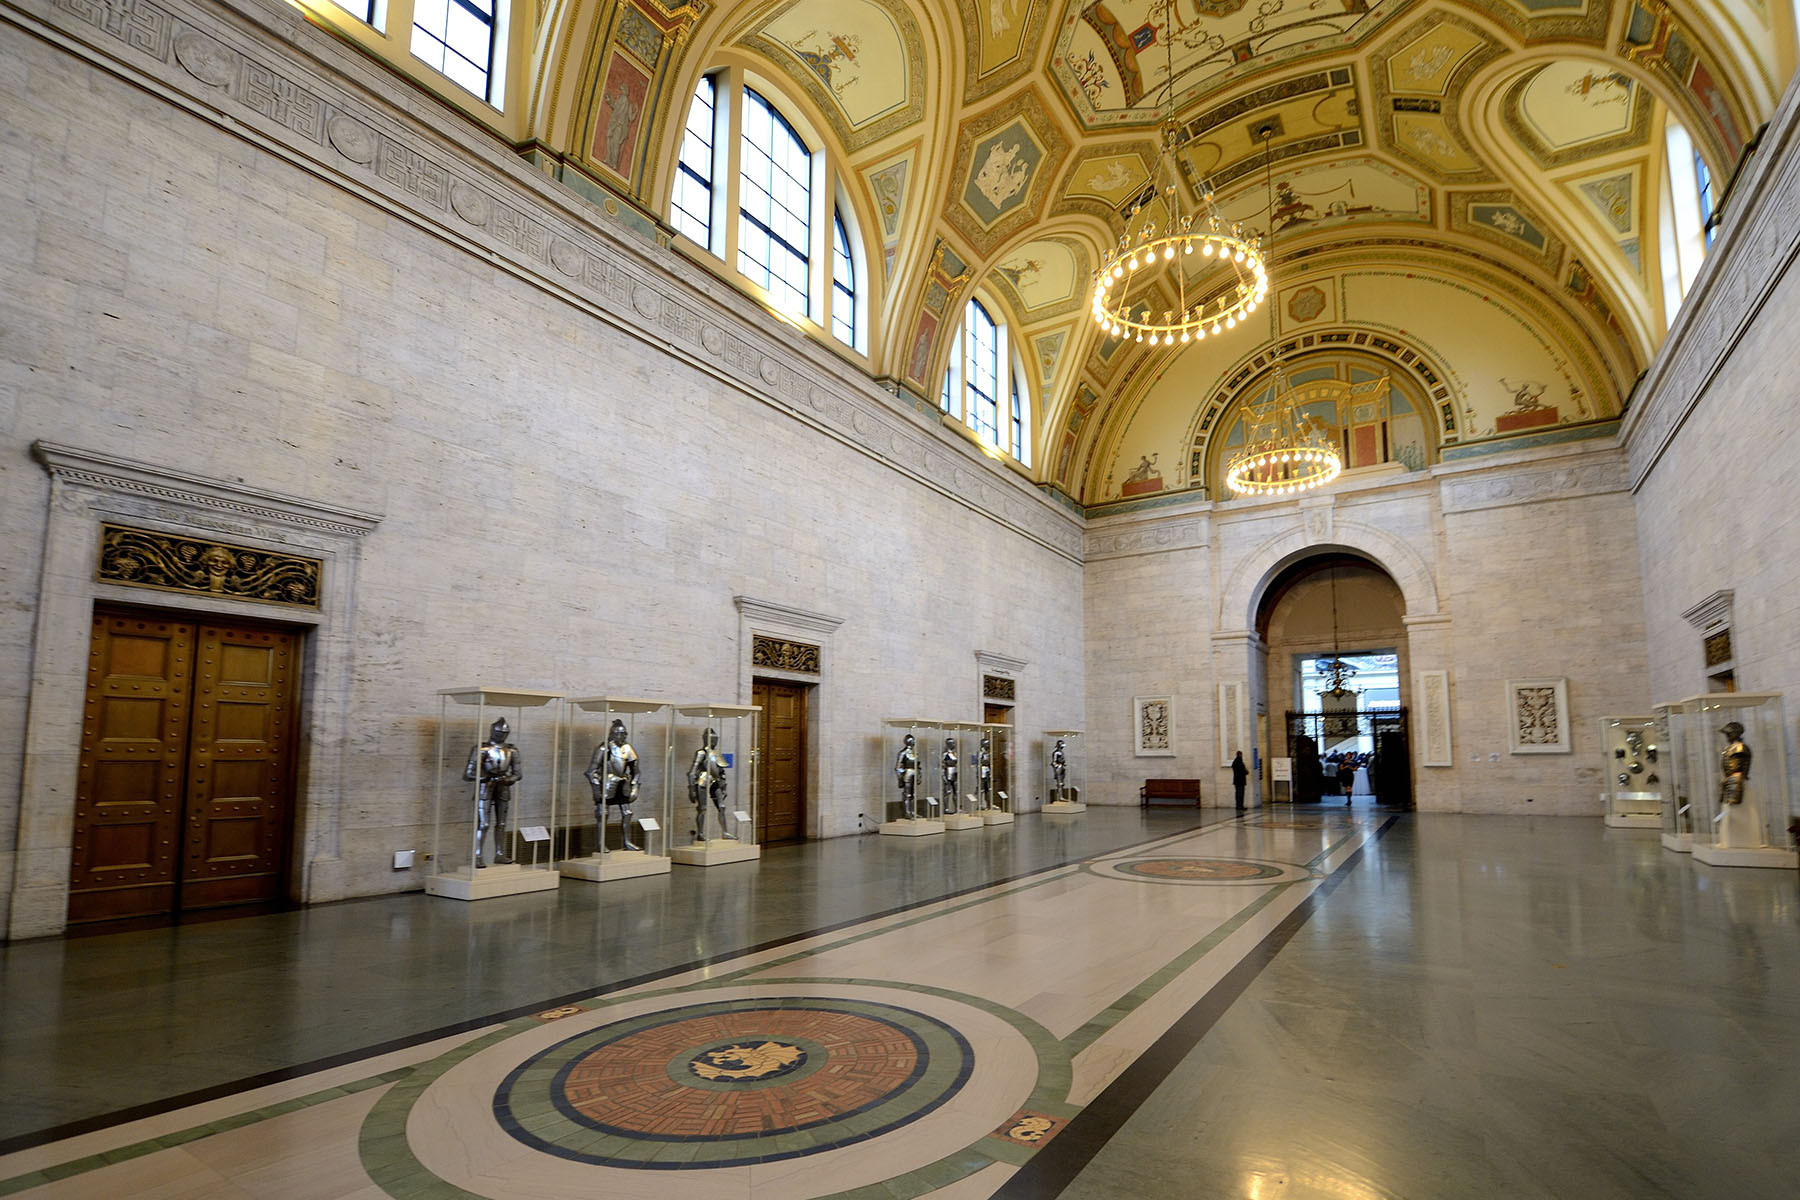 The Detroit Institute of Arts, one of the premier art museums in the United States, is home to more than 60 000 works comprising a multicultural survey of human creativity from ancient times through the 21st century.